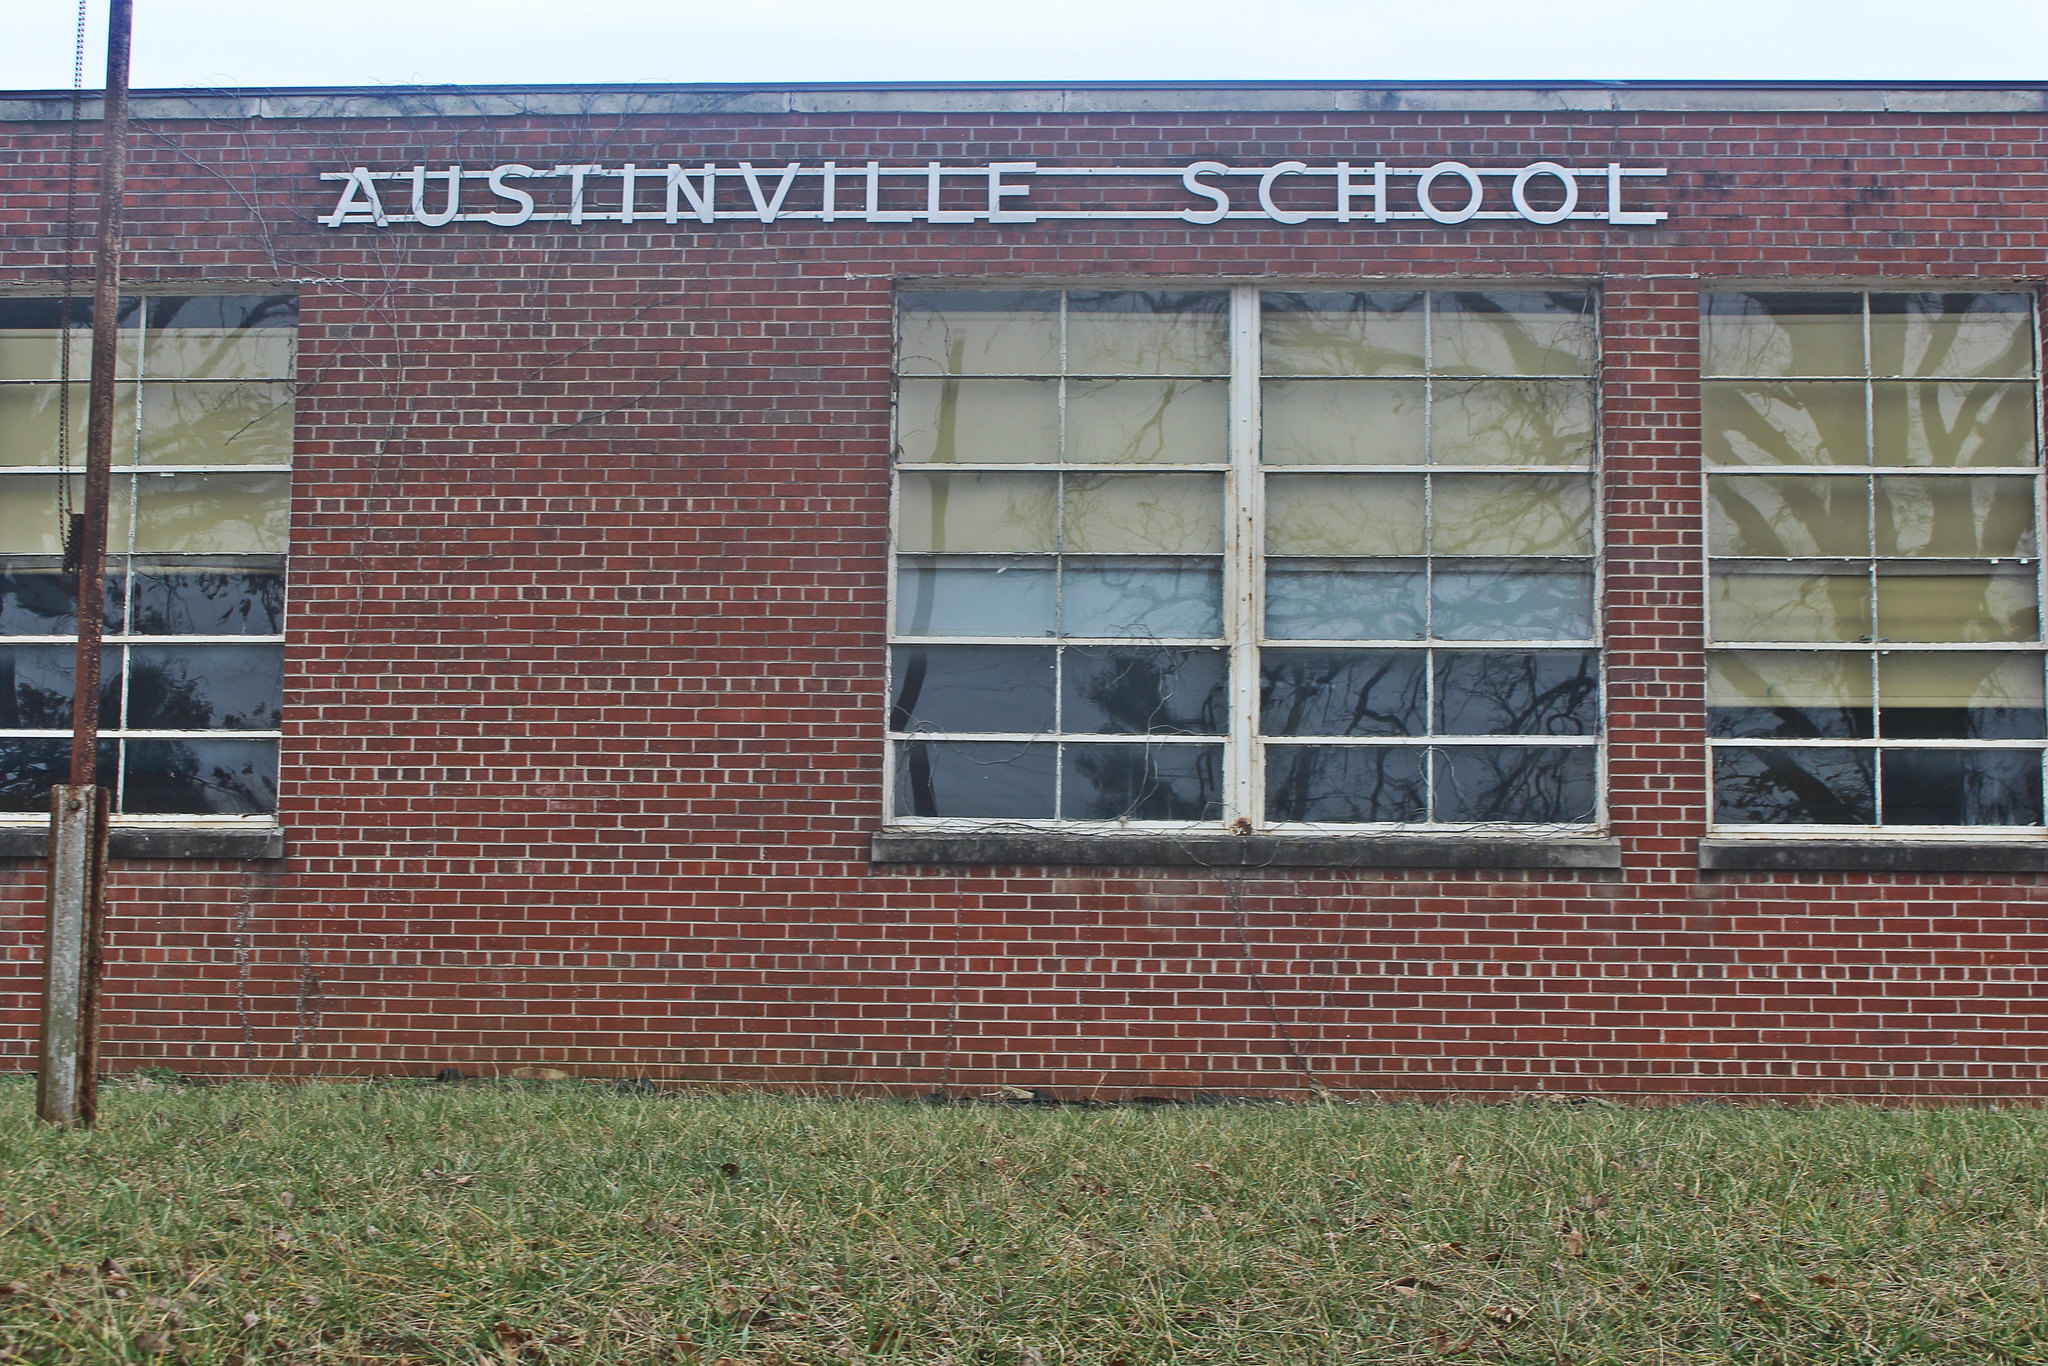 Former Austinville School -- Wythe Co, Virginia